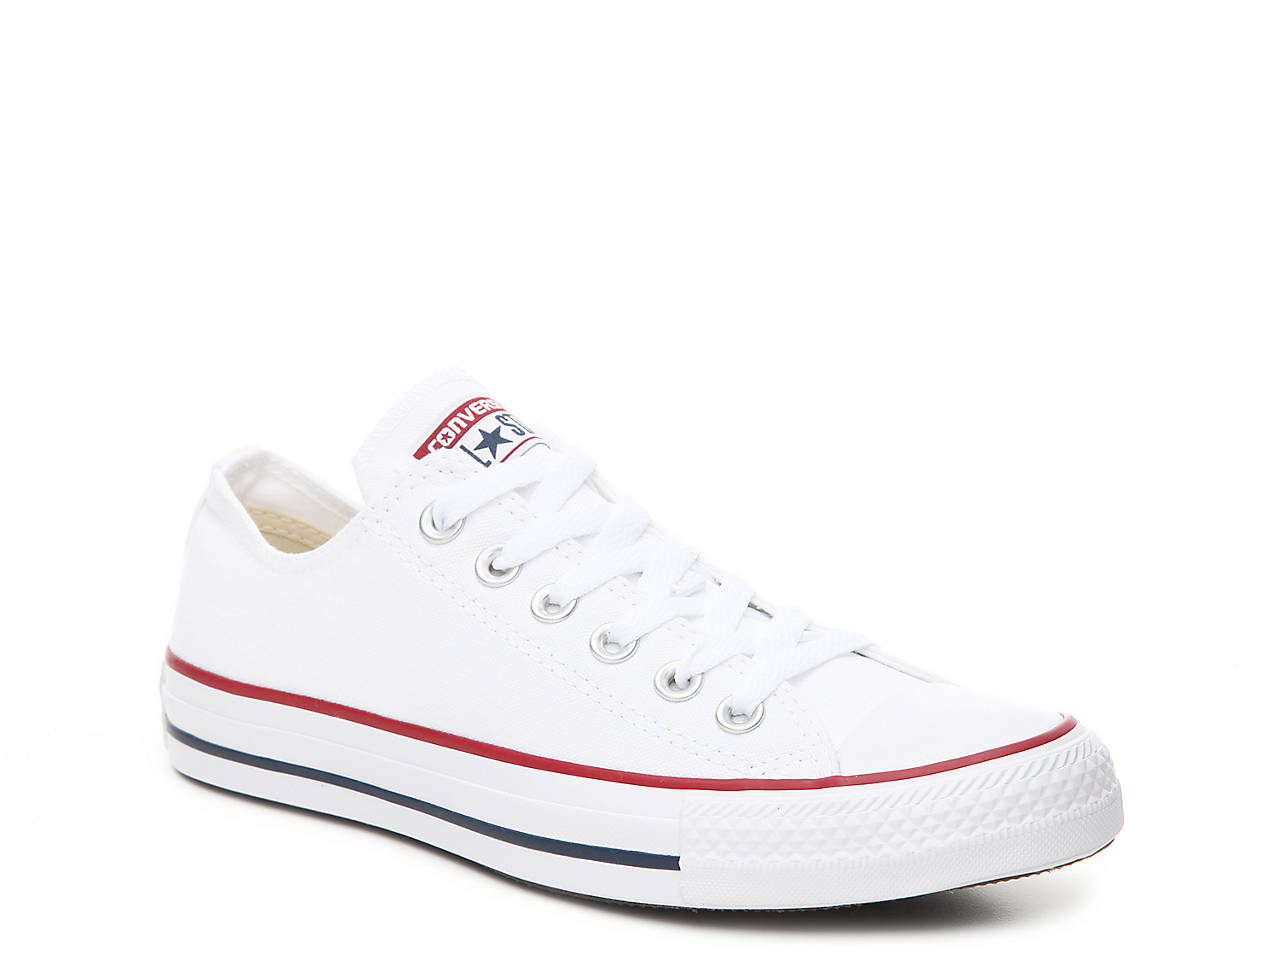 1da5b7c36ee466 Converse Chuck Taylor All Star Sneaker - Women s Women s Shoes